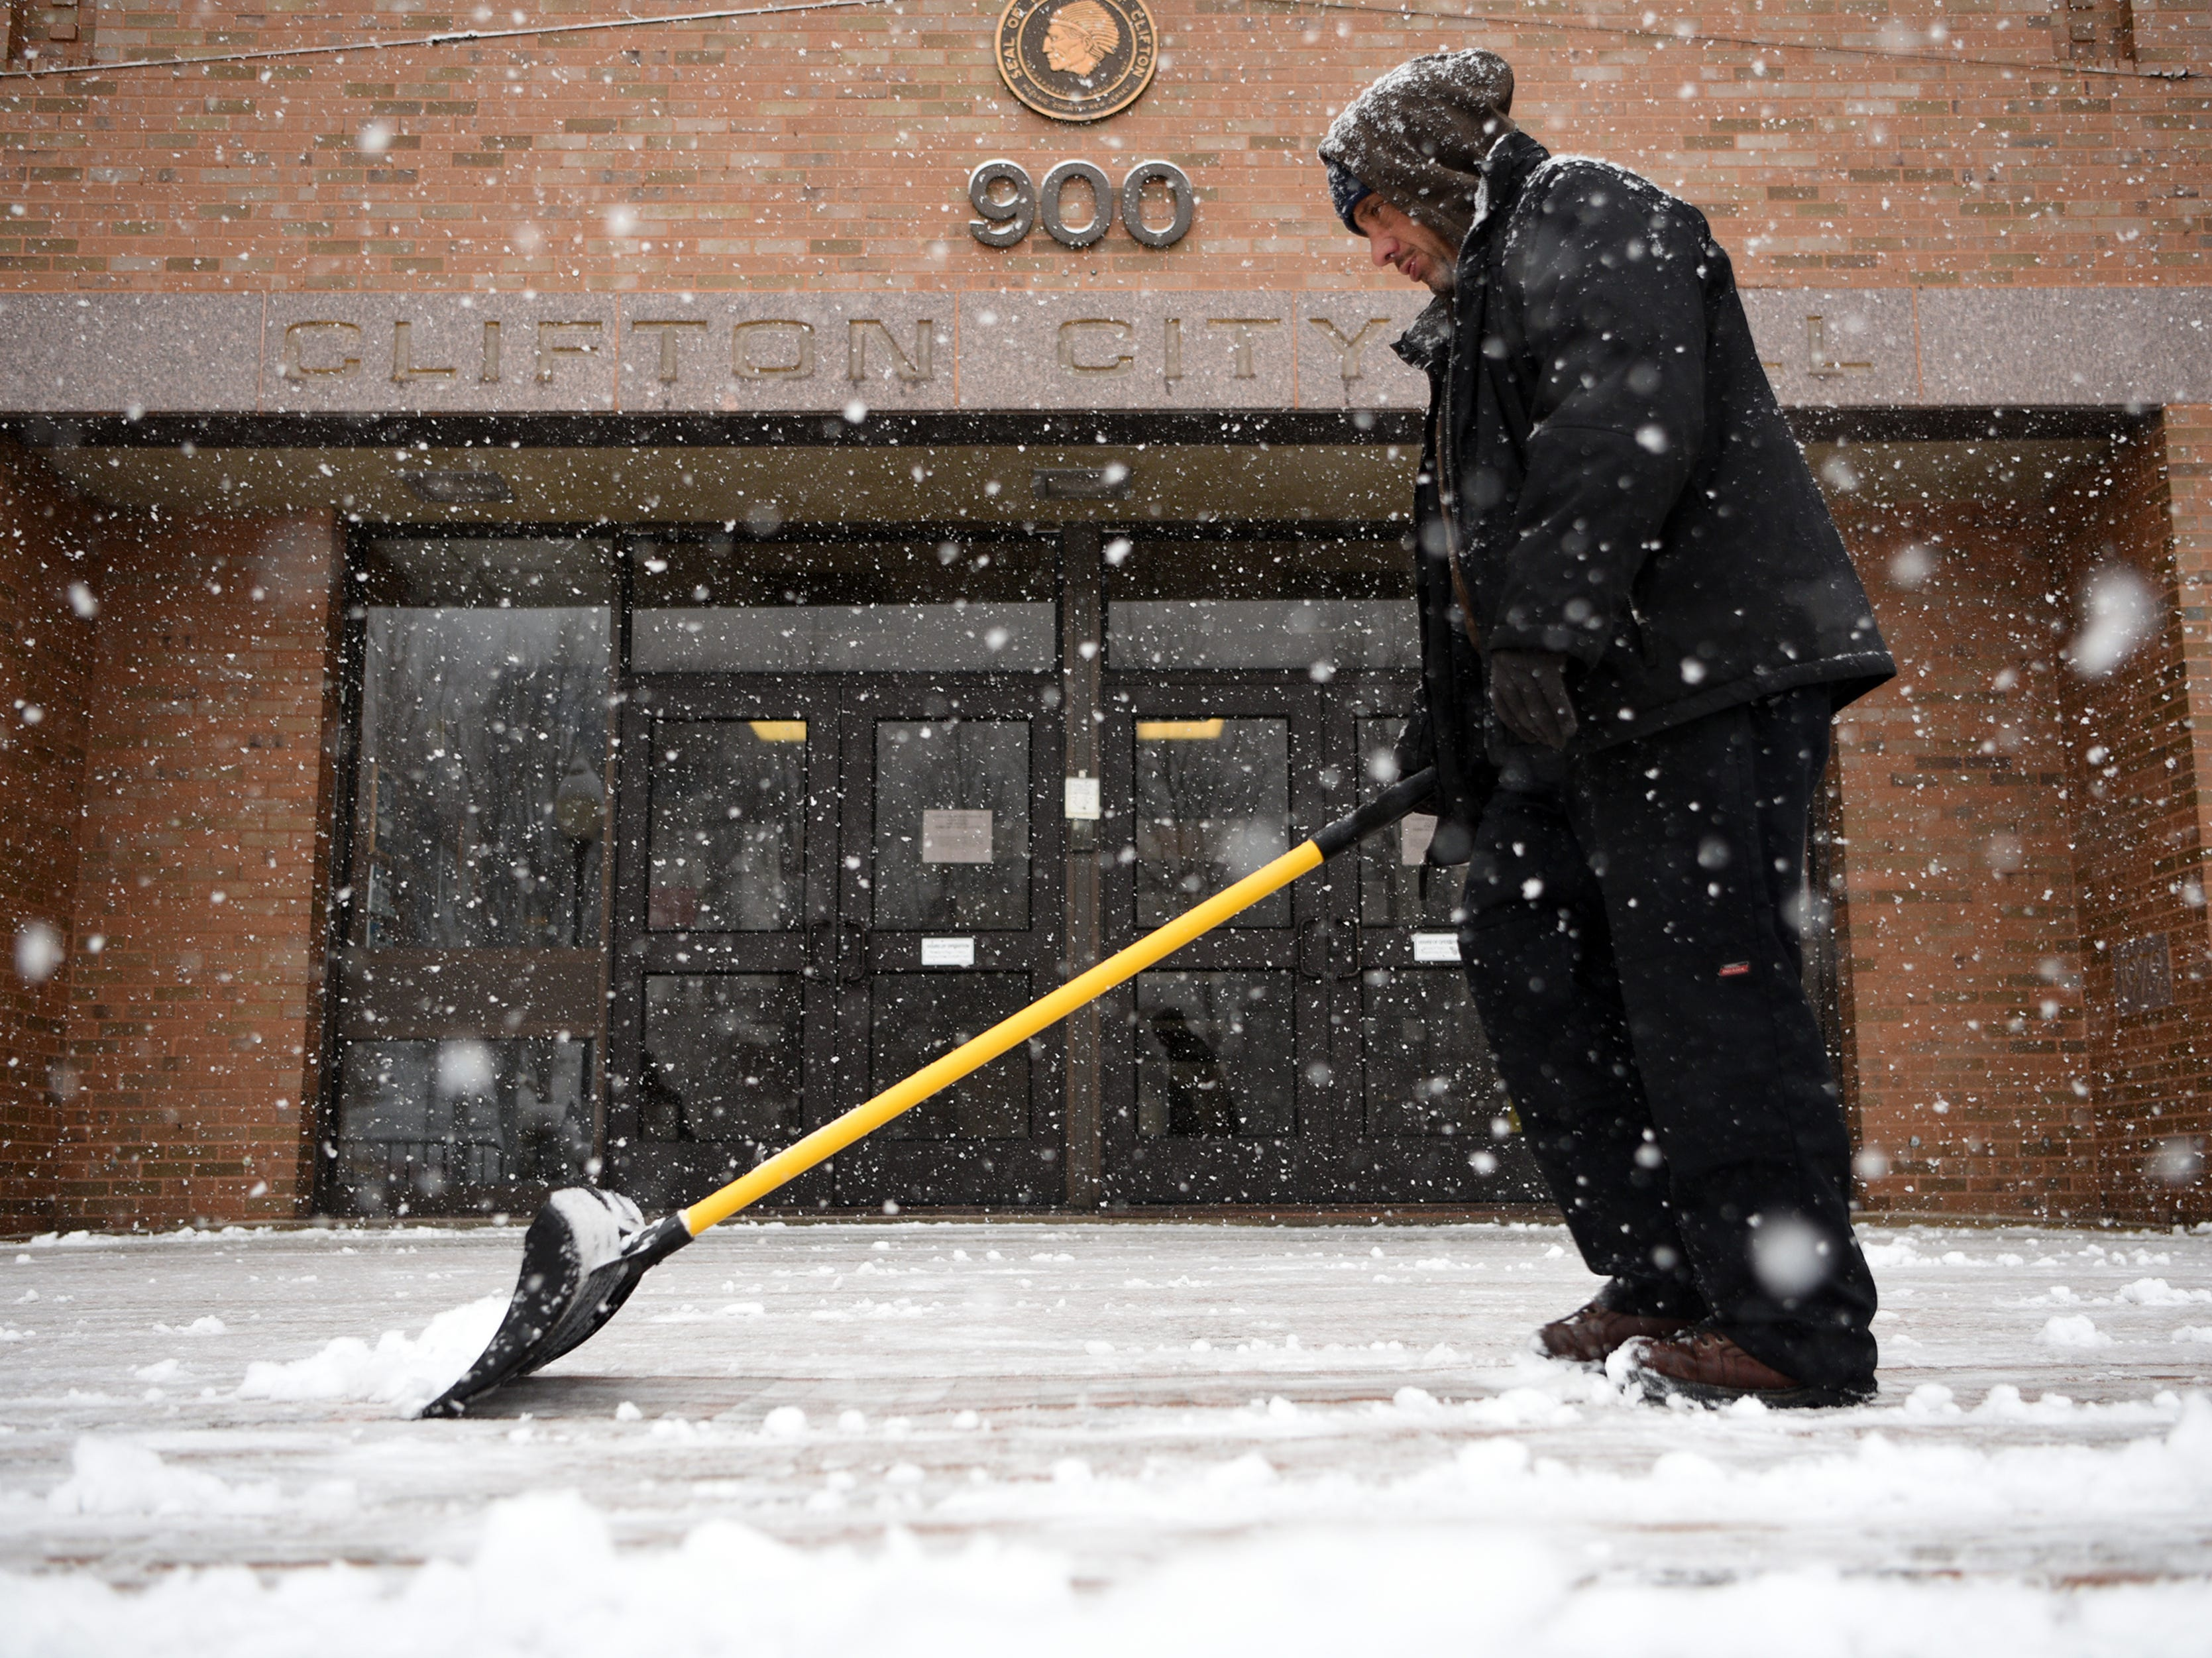 February 9, 2017: The Clifton DPW clears the snow from the entrance to Clifton City Hall during the snow storm.